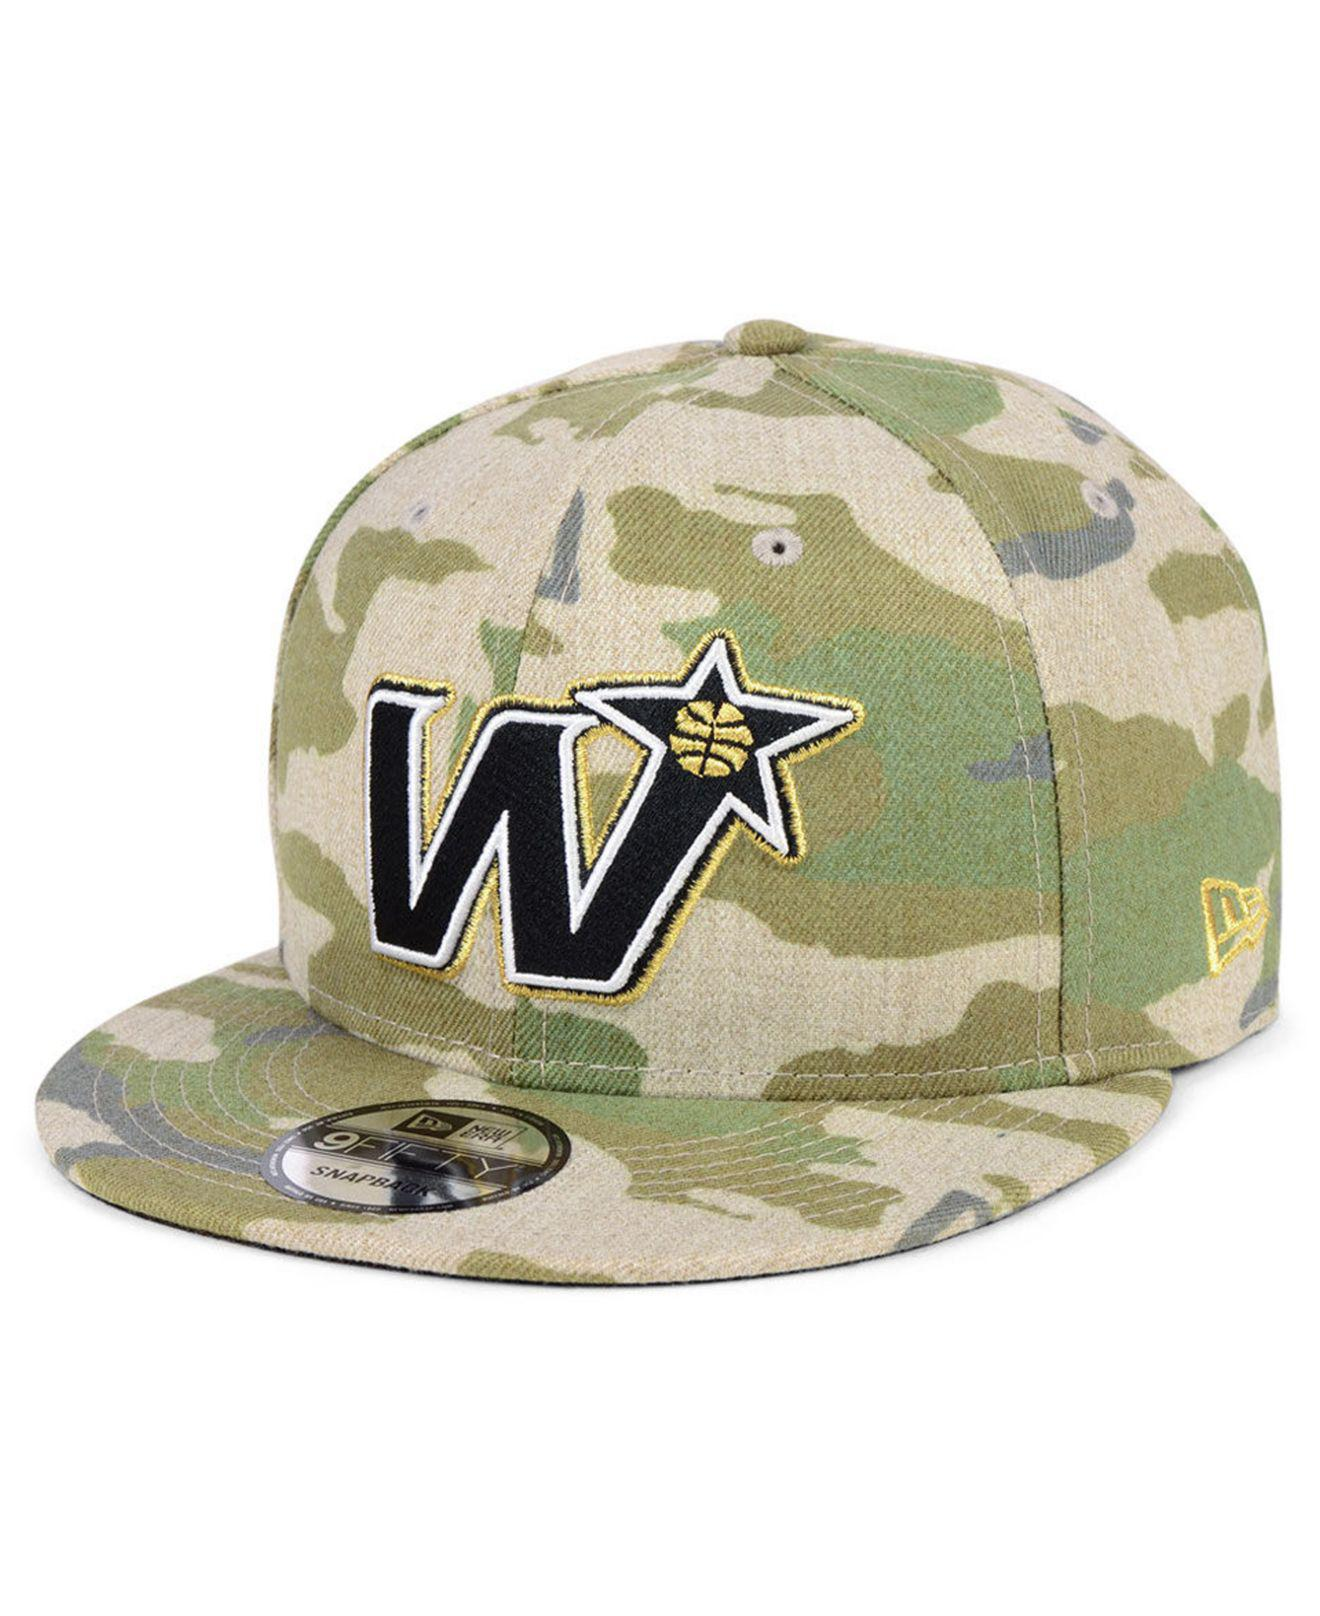 competitive price 5cf80 50141 Lyst - KTZ Washington Wizards Combo Camo 9fifty Snapback Cap in ...